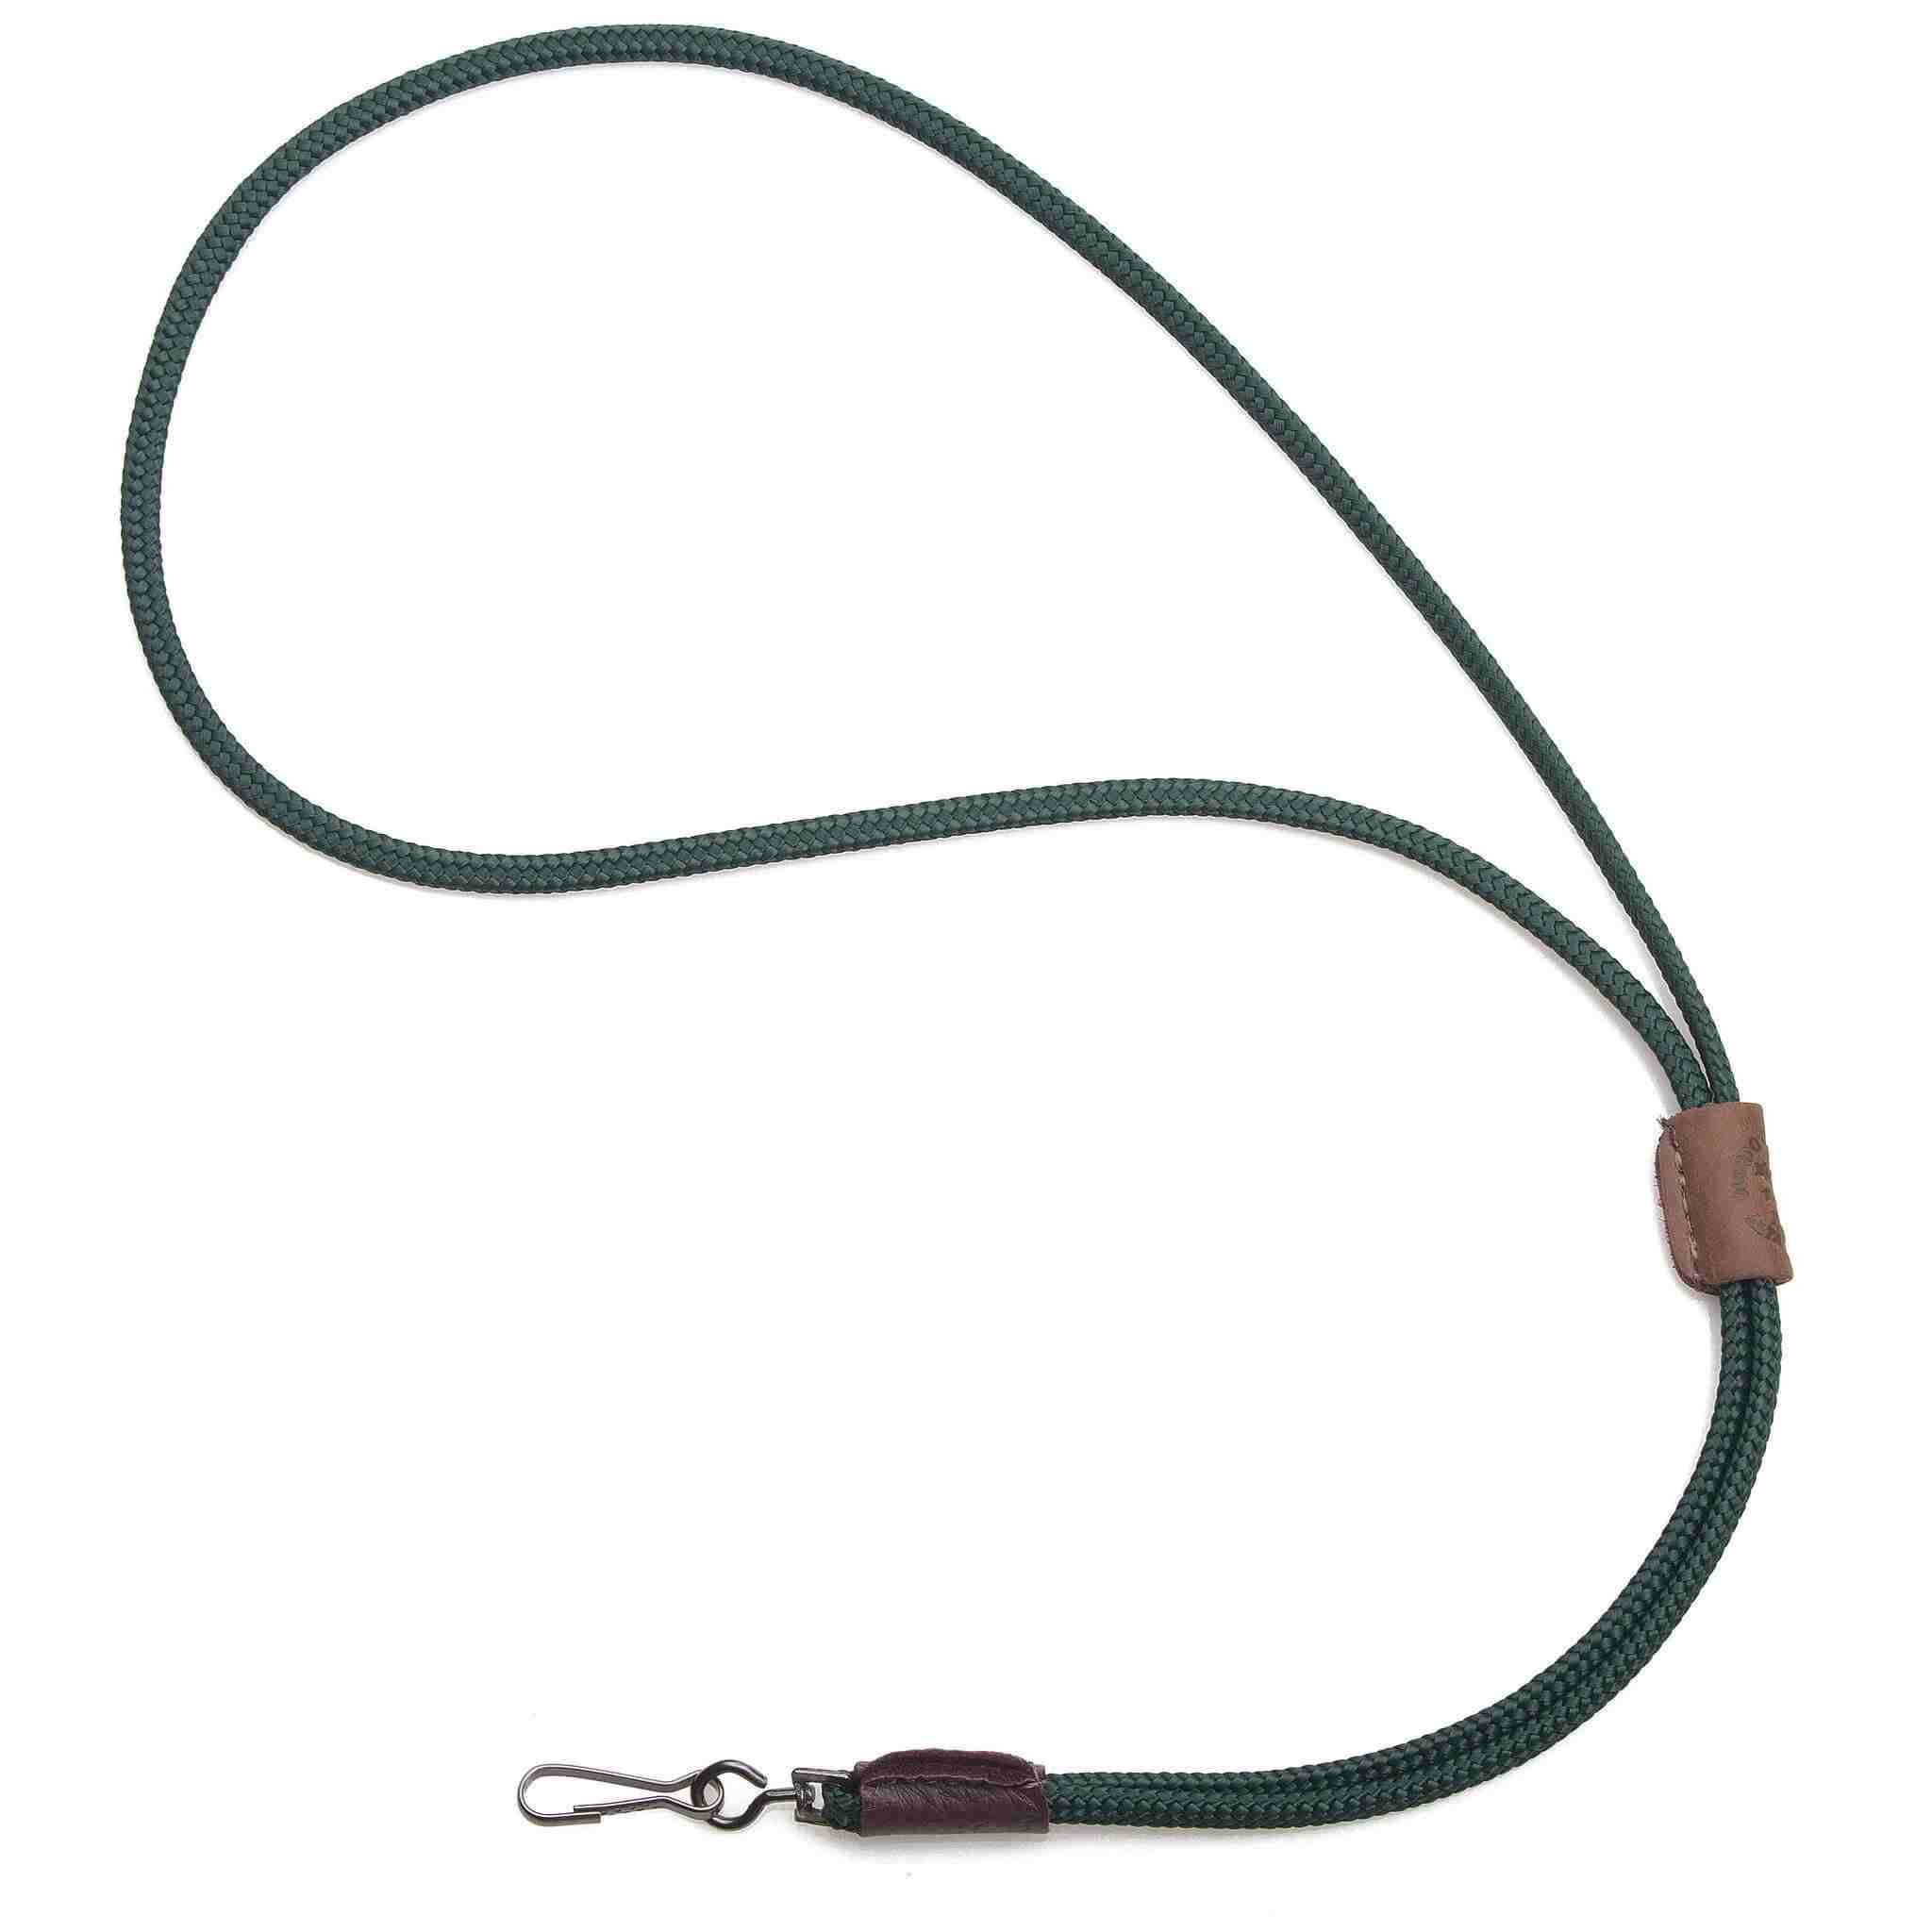 Mendota Braided Whistle Lanyard Single Black